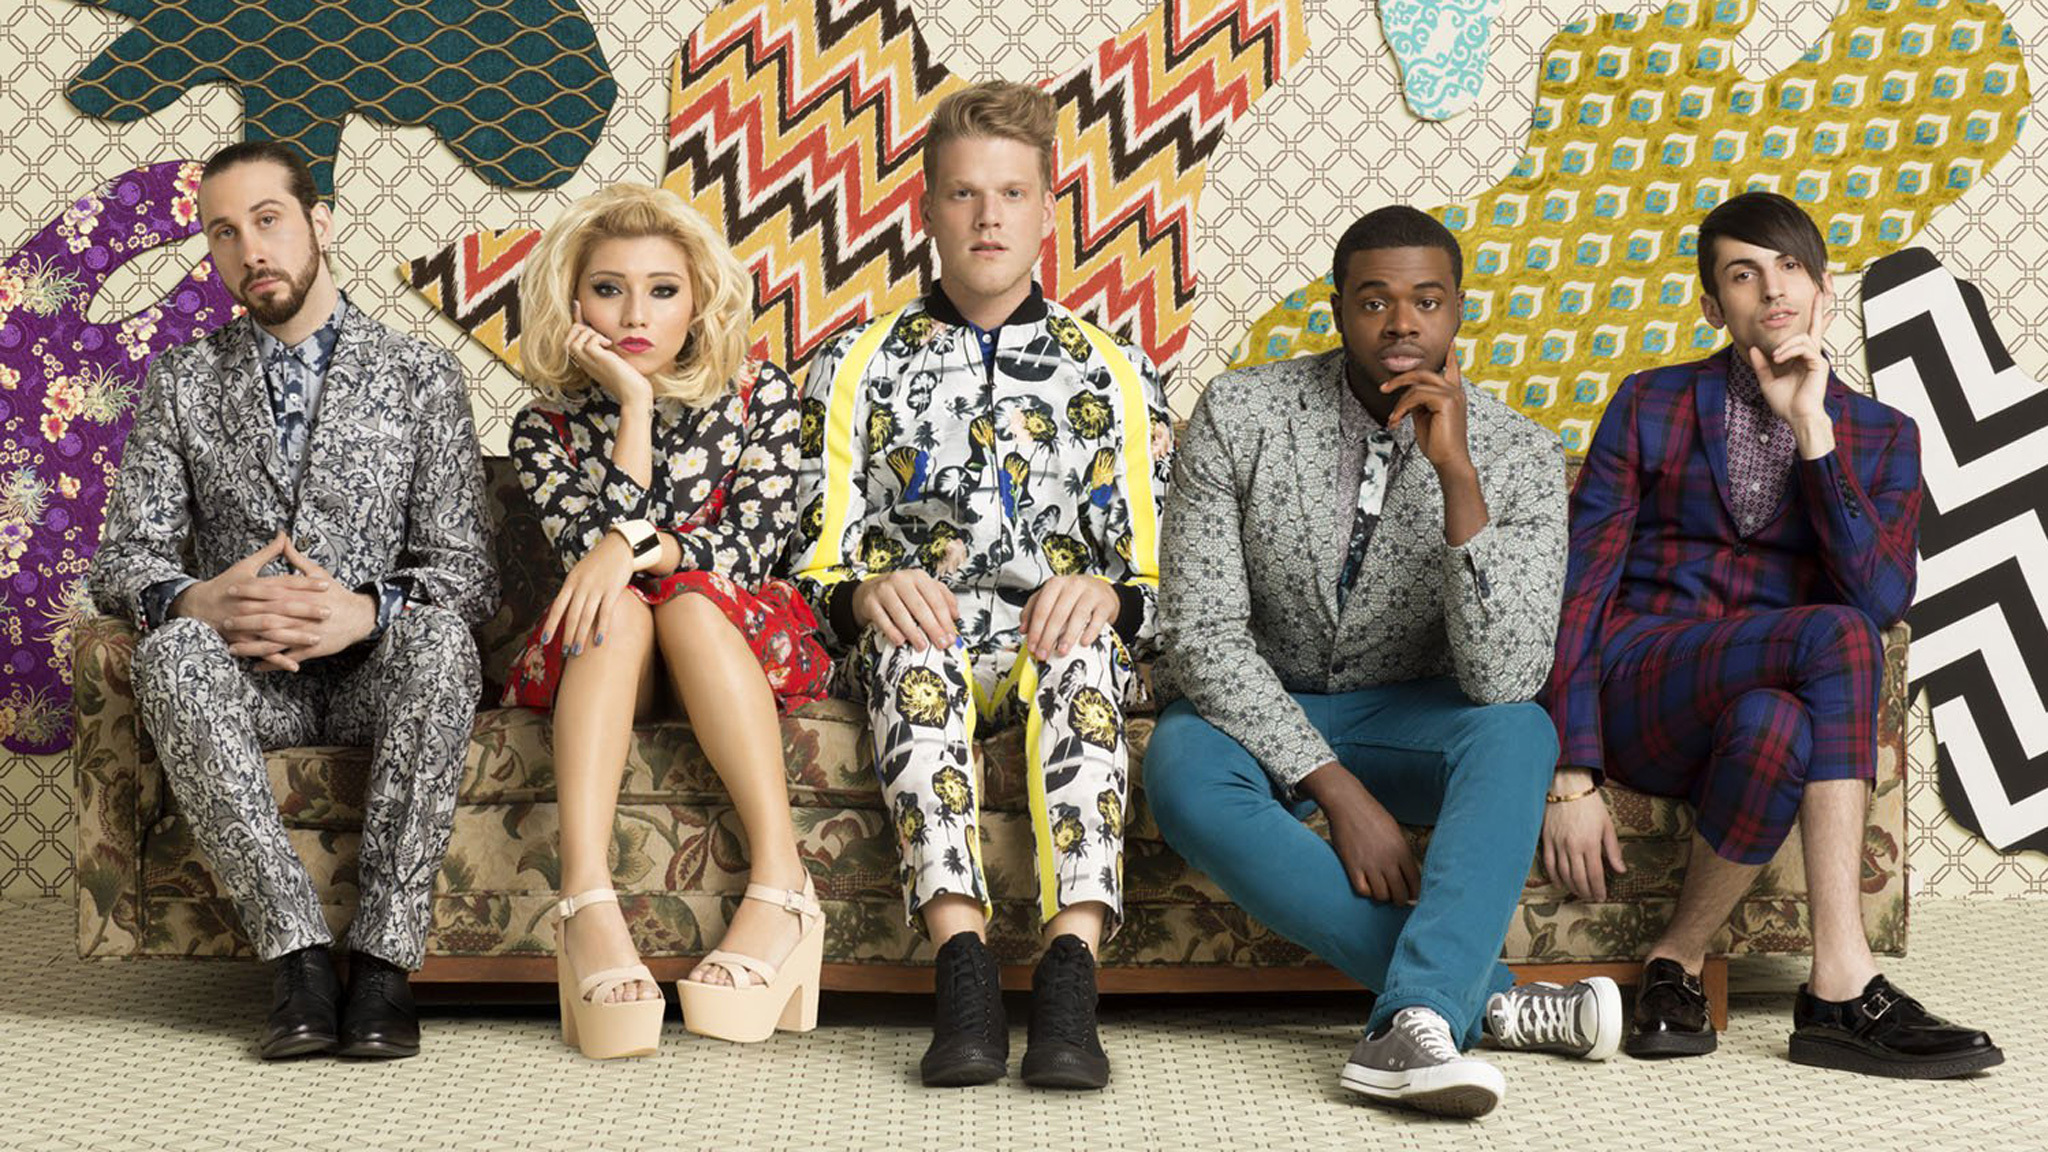 July 4th Fireworks Spectacular with Pentatonix